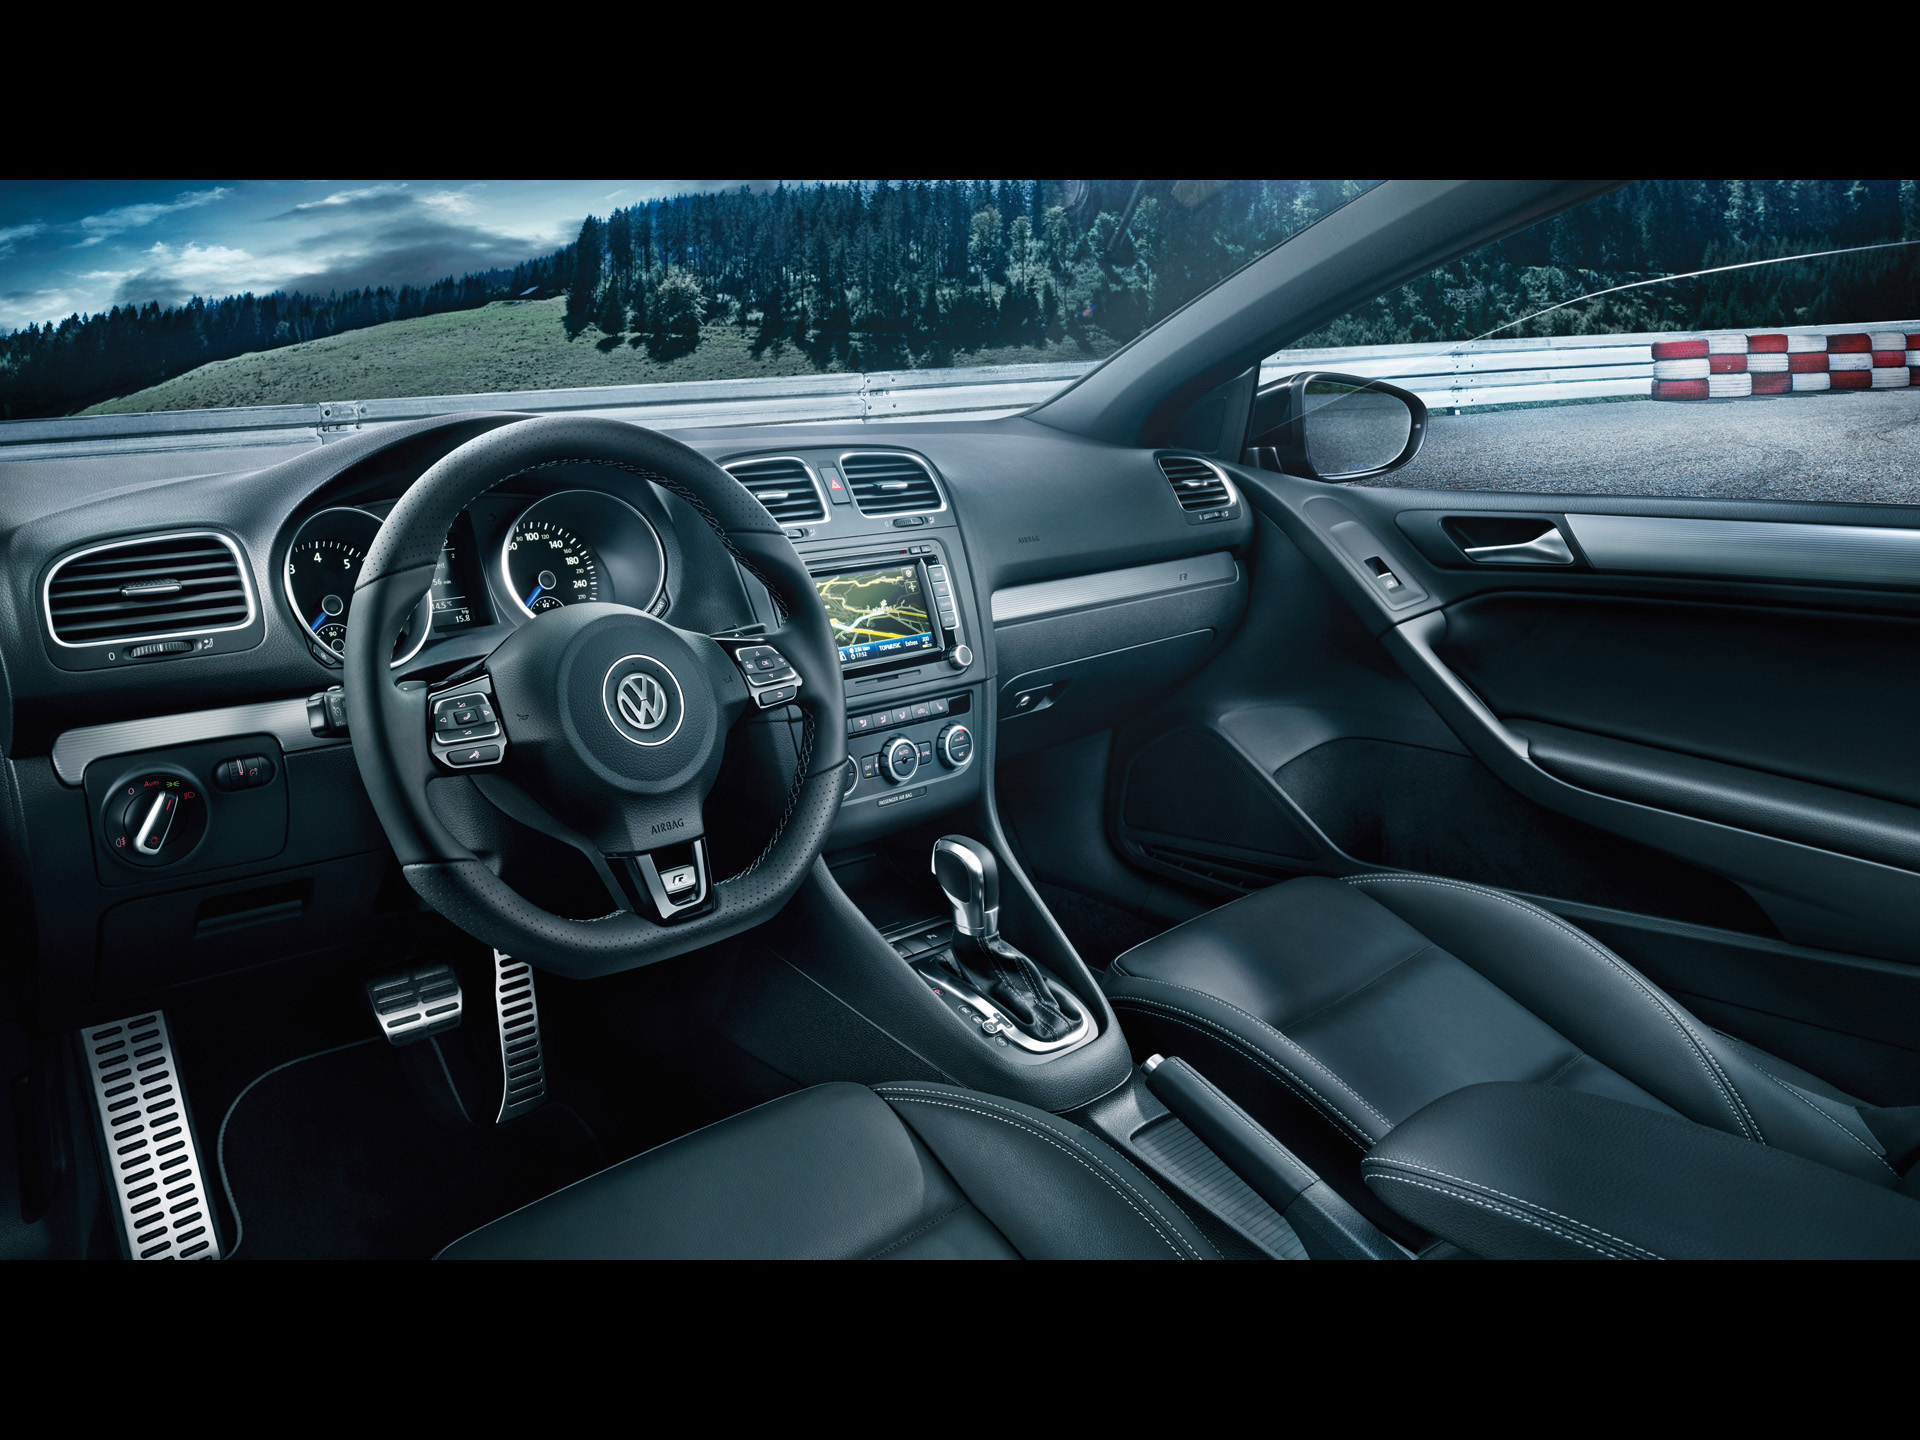 2013 Volkswagen Golf R Cabriolet Full HD Wallpaper And Background